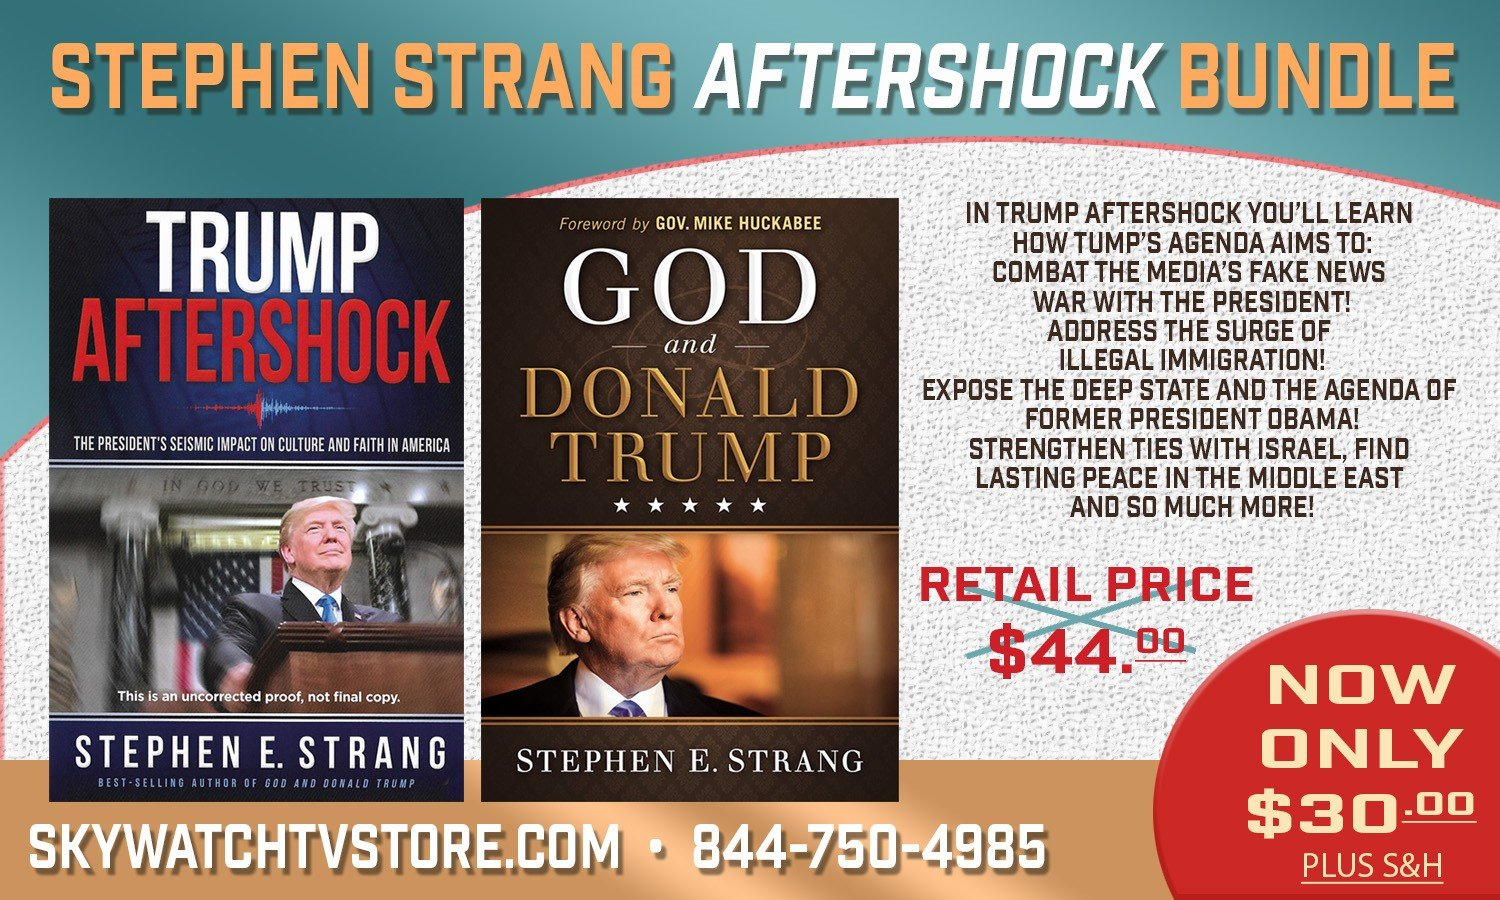 Trump Aftershock Bundle